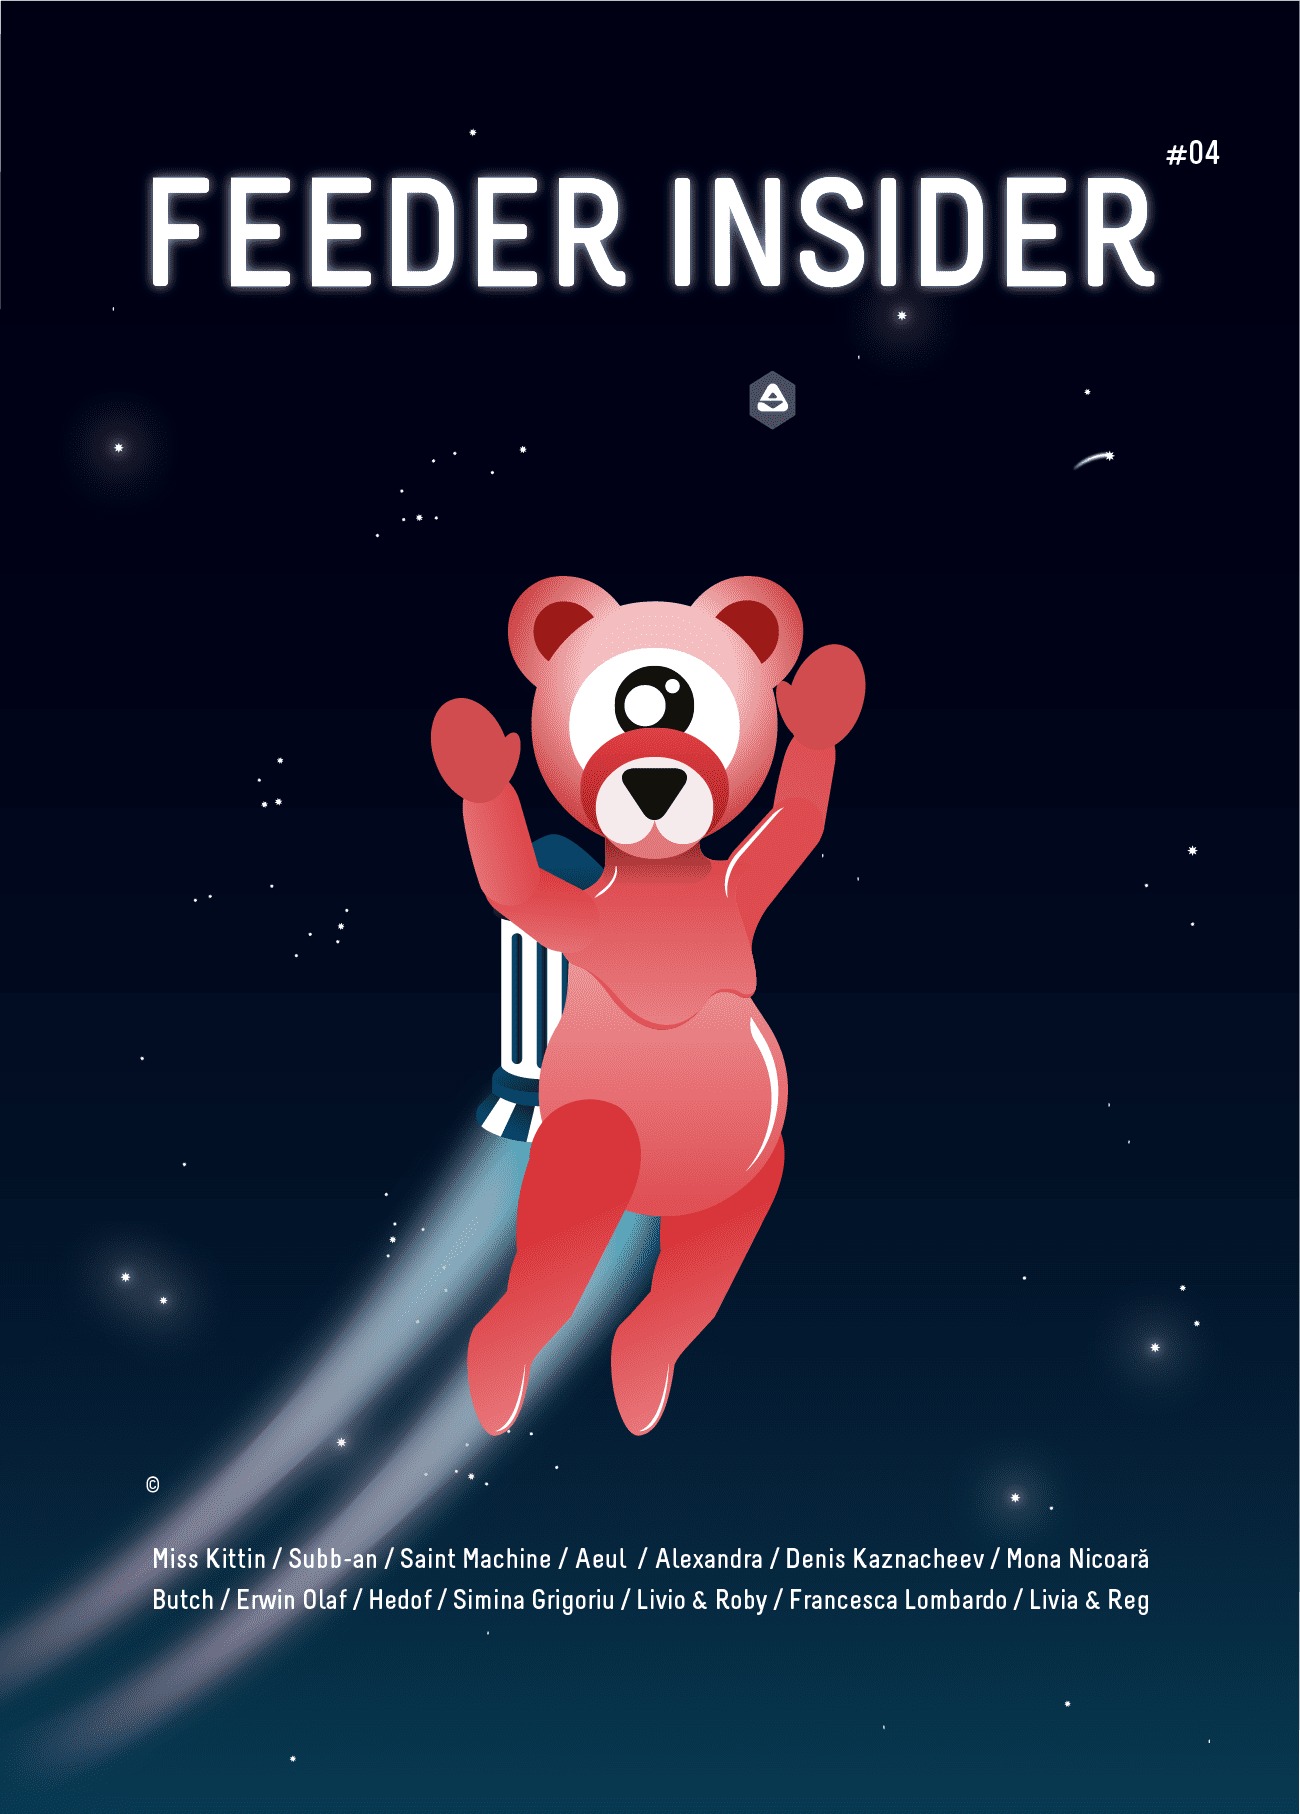 ebook feeder insider #04 coperta